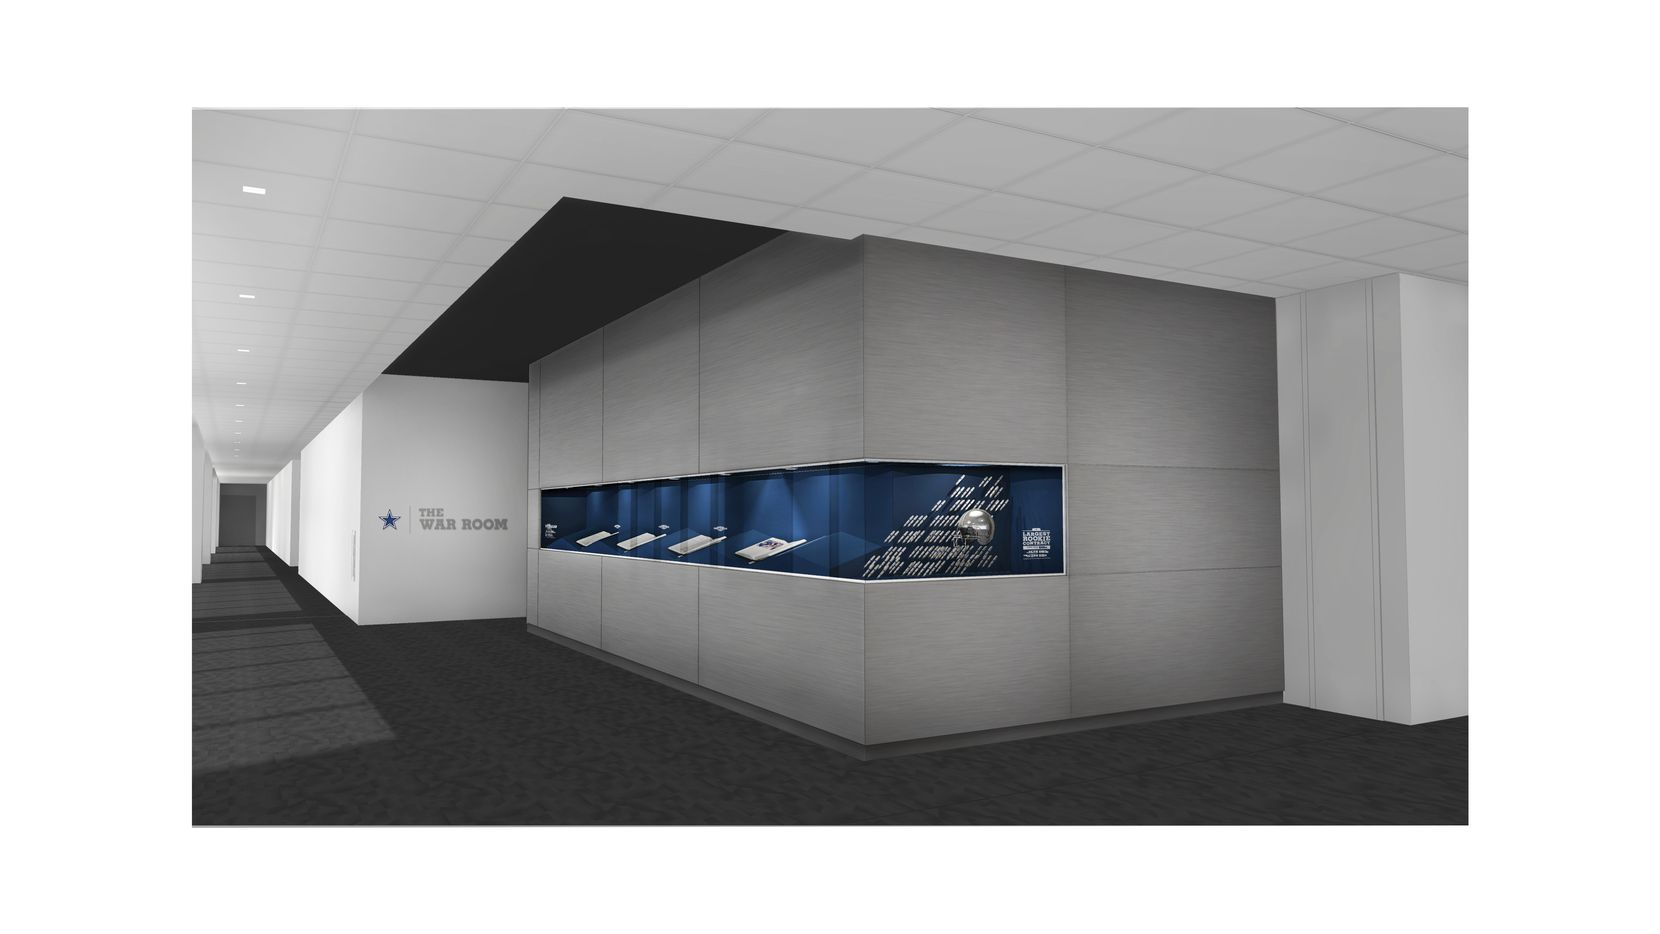 An artist's rendering of the exterior of the new draft war room at the Cowboys headquarters at The Star in Frisco.